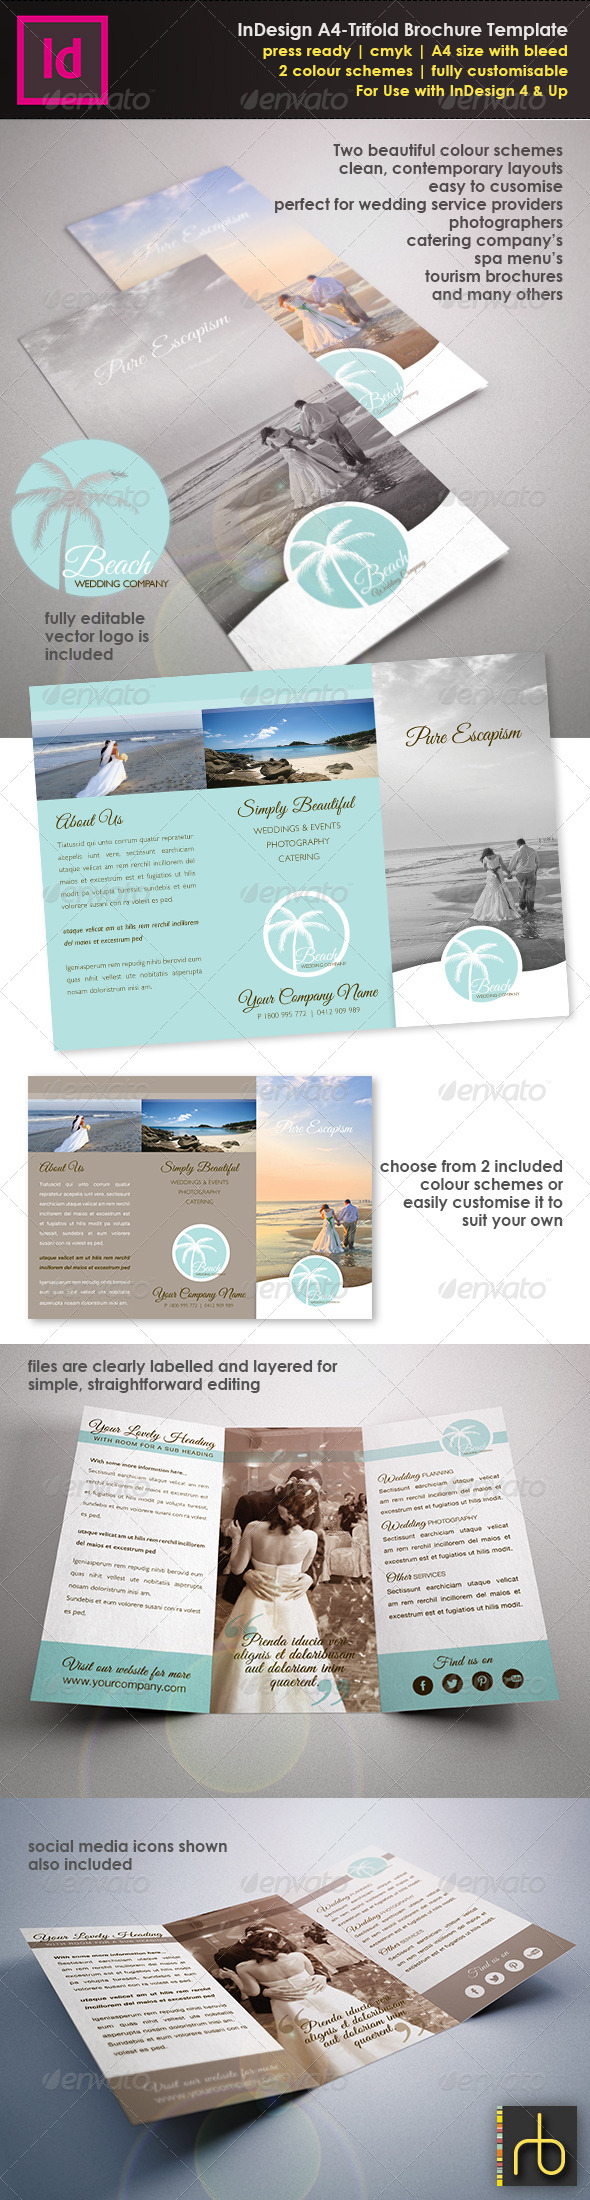 InDesign A4 Trifold Brochure Template